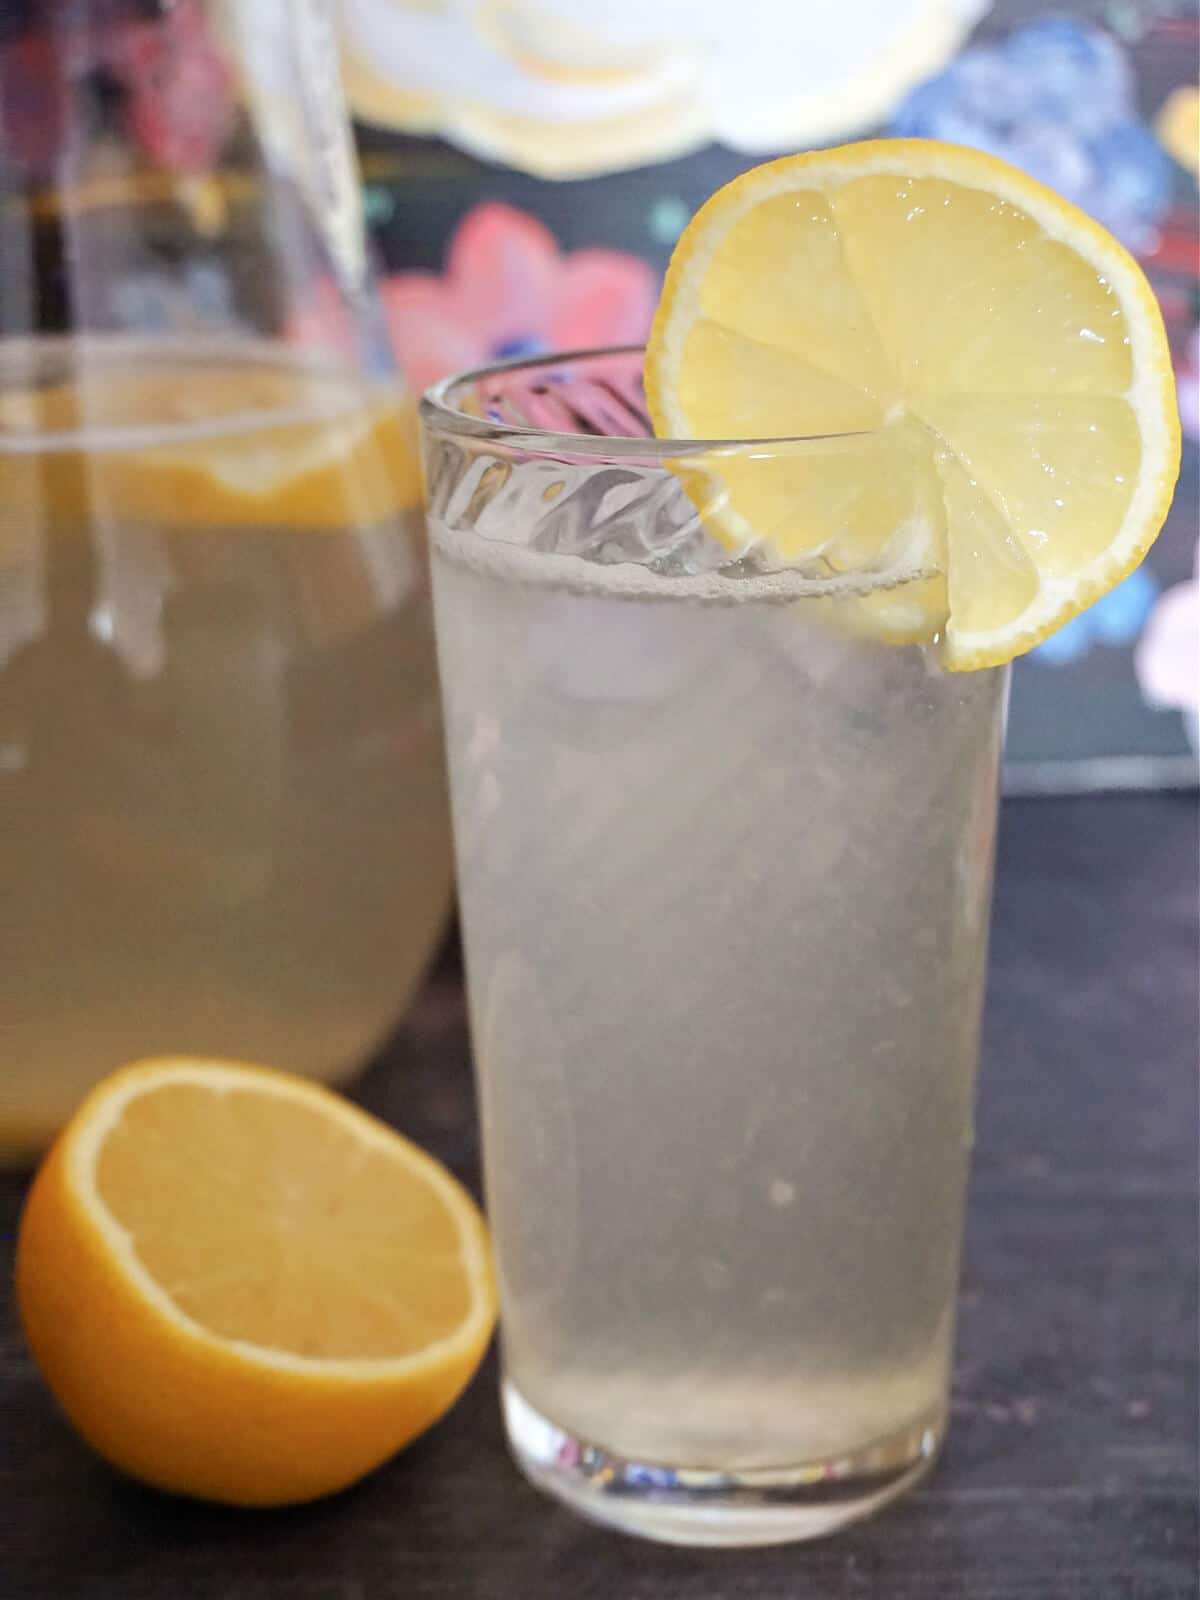 A tall glass with lemonade, a slice of lemon on the edge of it, and half a lemon next to the glass